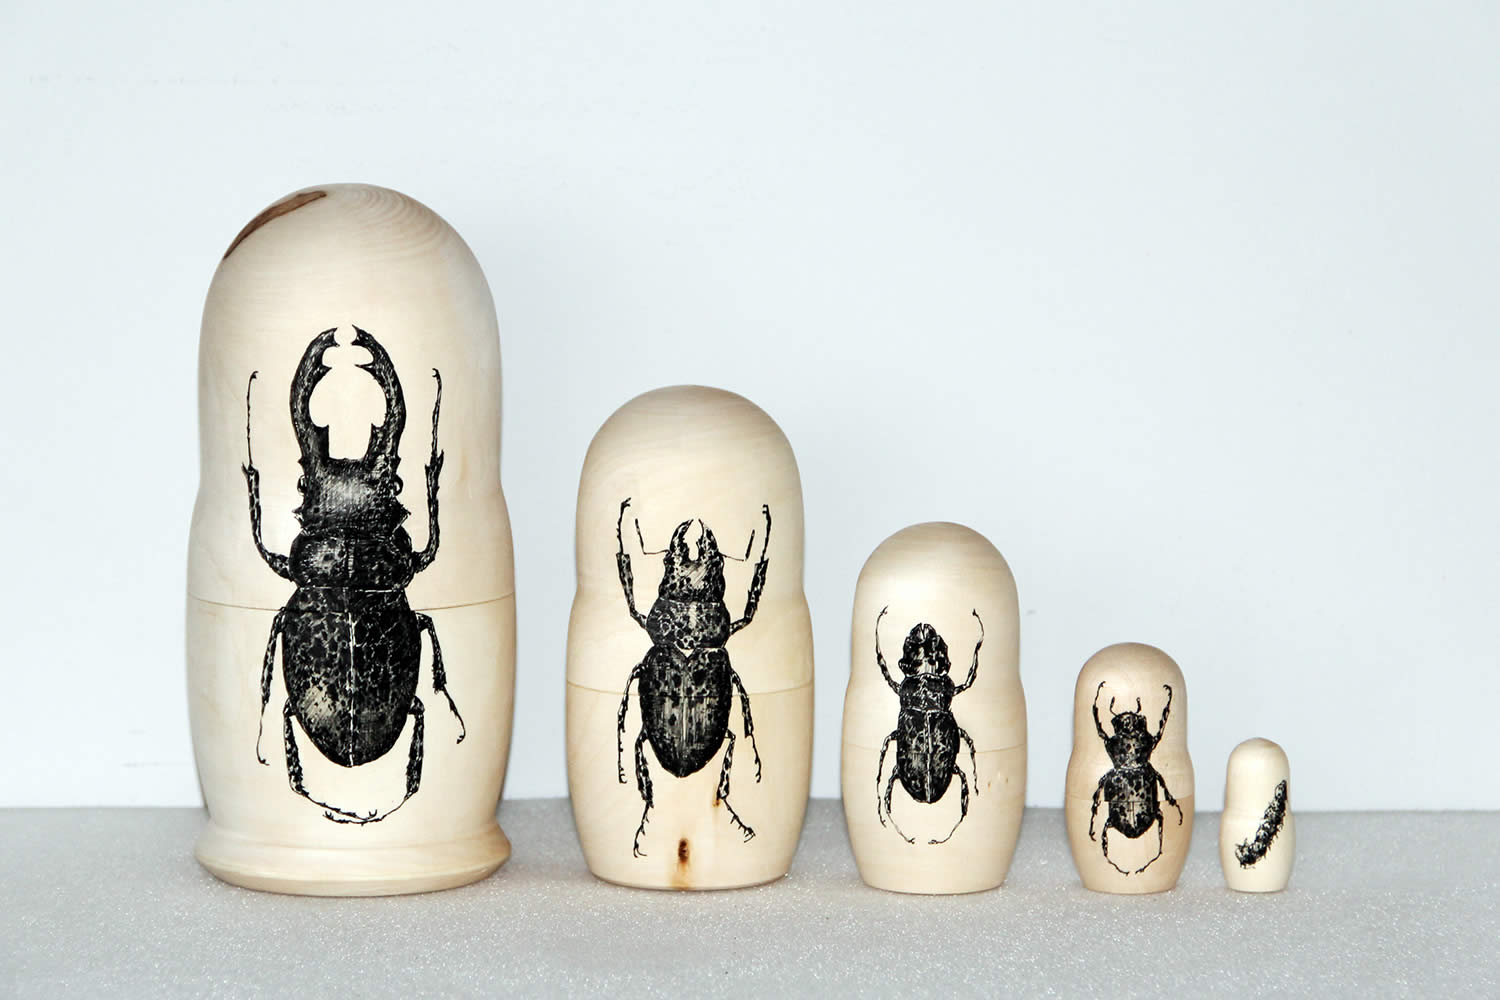 Insect Drawings on Russian Nesting Dolls